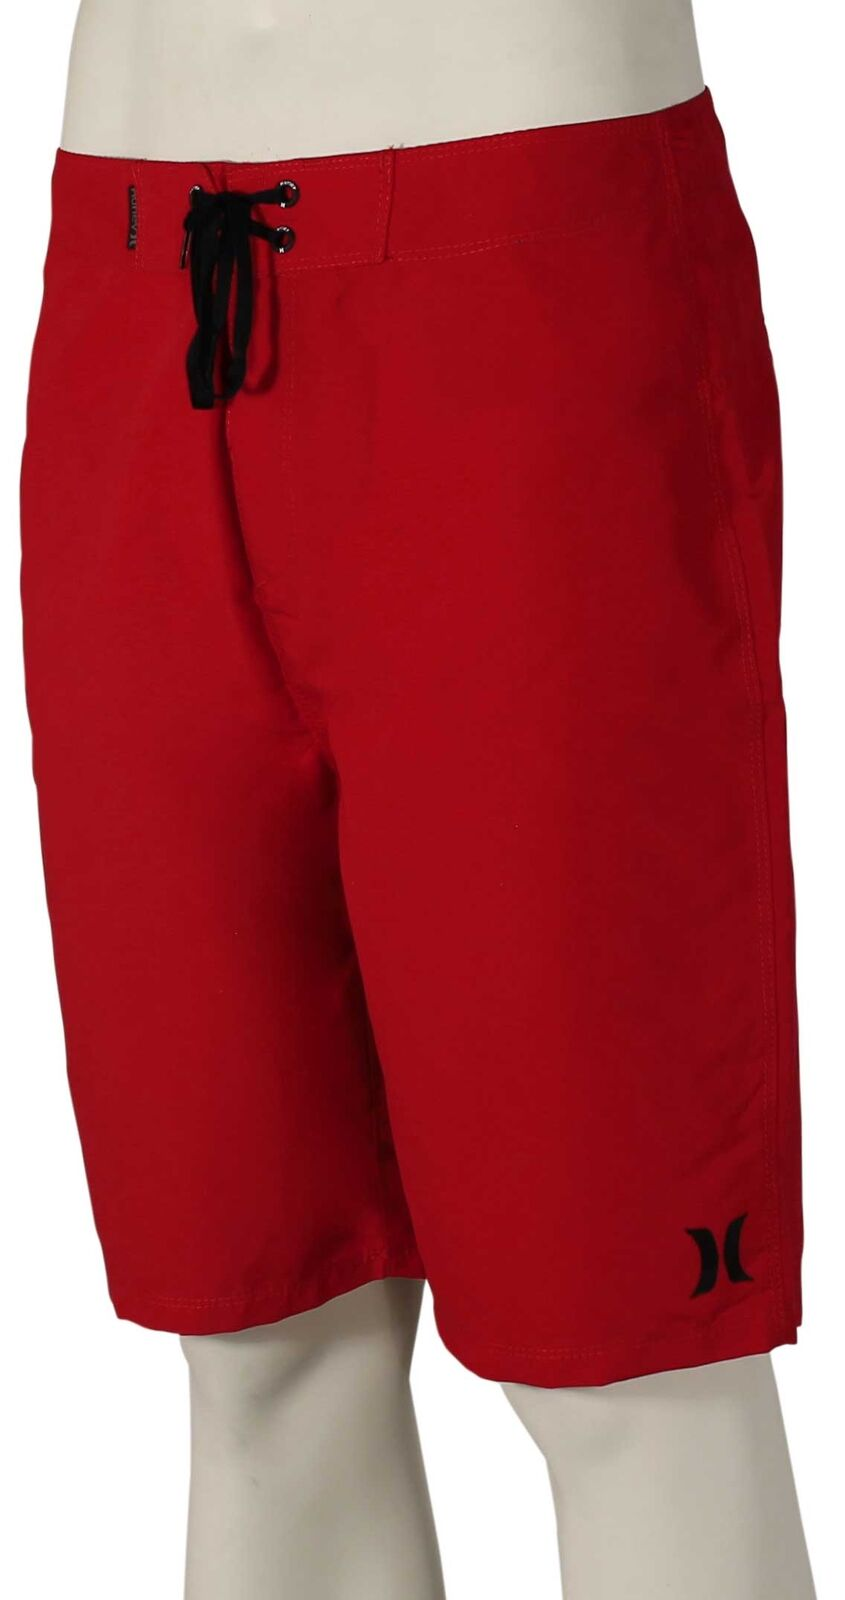 Hurley One and Only 2.0 Boardshorts - Gym Red - New